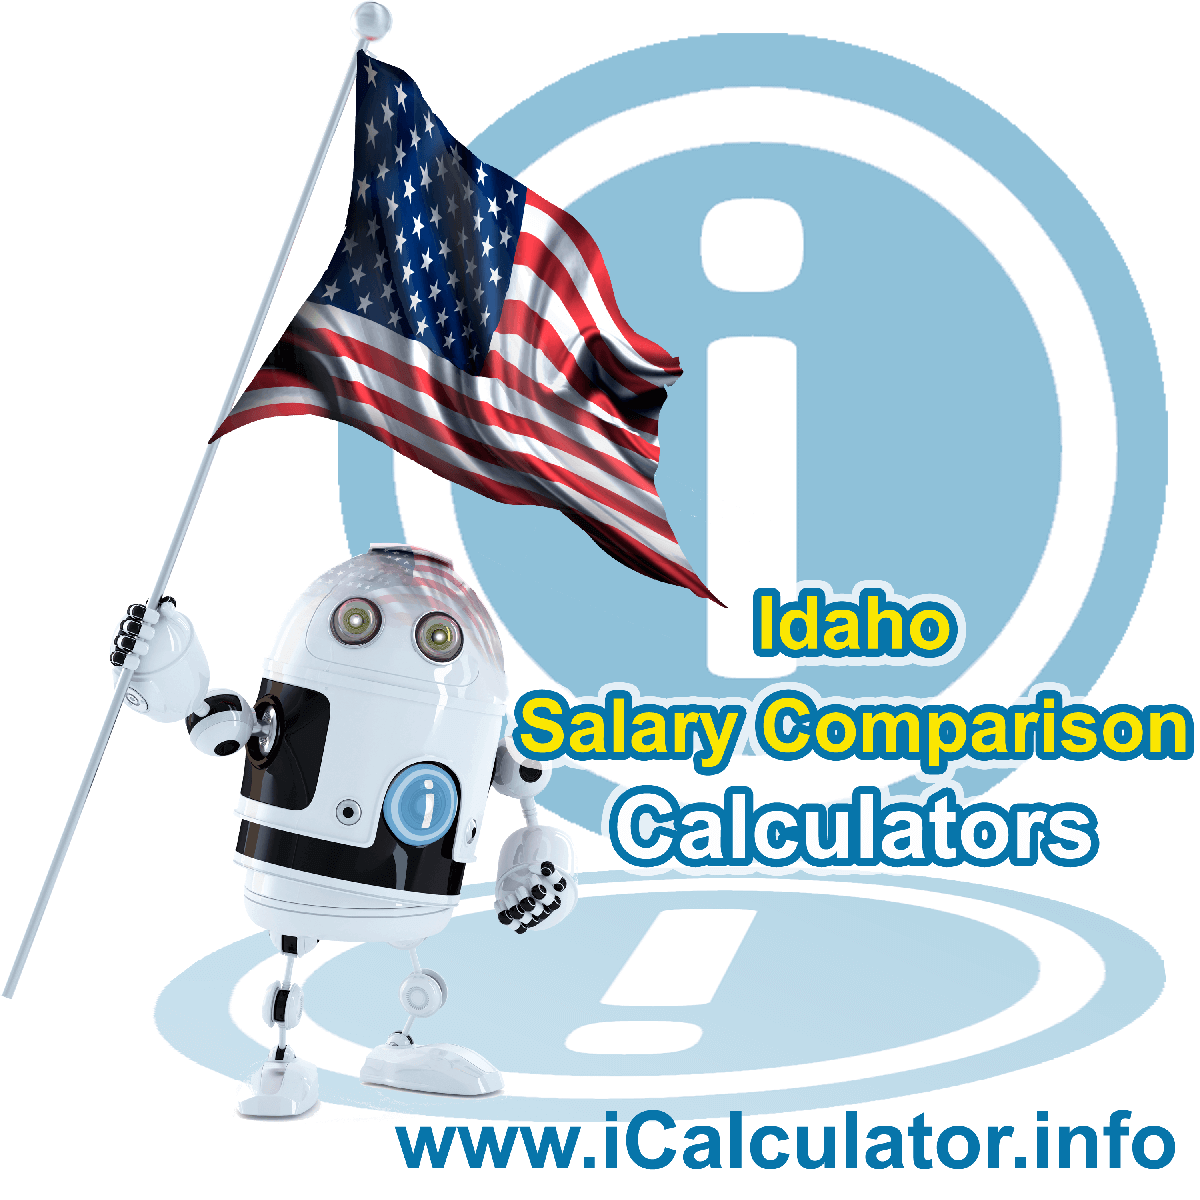 Idaho Salary Comparison Calculator 2021 | iCalculator™ | The Idaho Salary Comparison Calculator allows you to quickly calculate and compare upto 6 salaries in Idaho or between other states for the 2021 tax year and historical tax years. Its an excellent tool for jobseekers, pay raise comparison and comparison of salaries between different US States